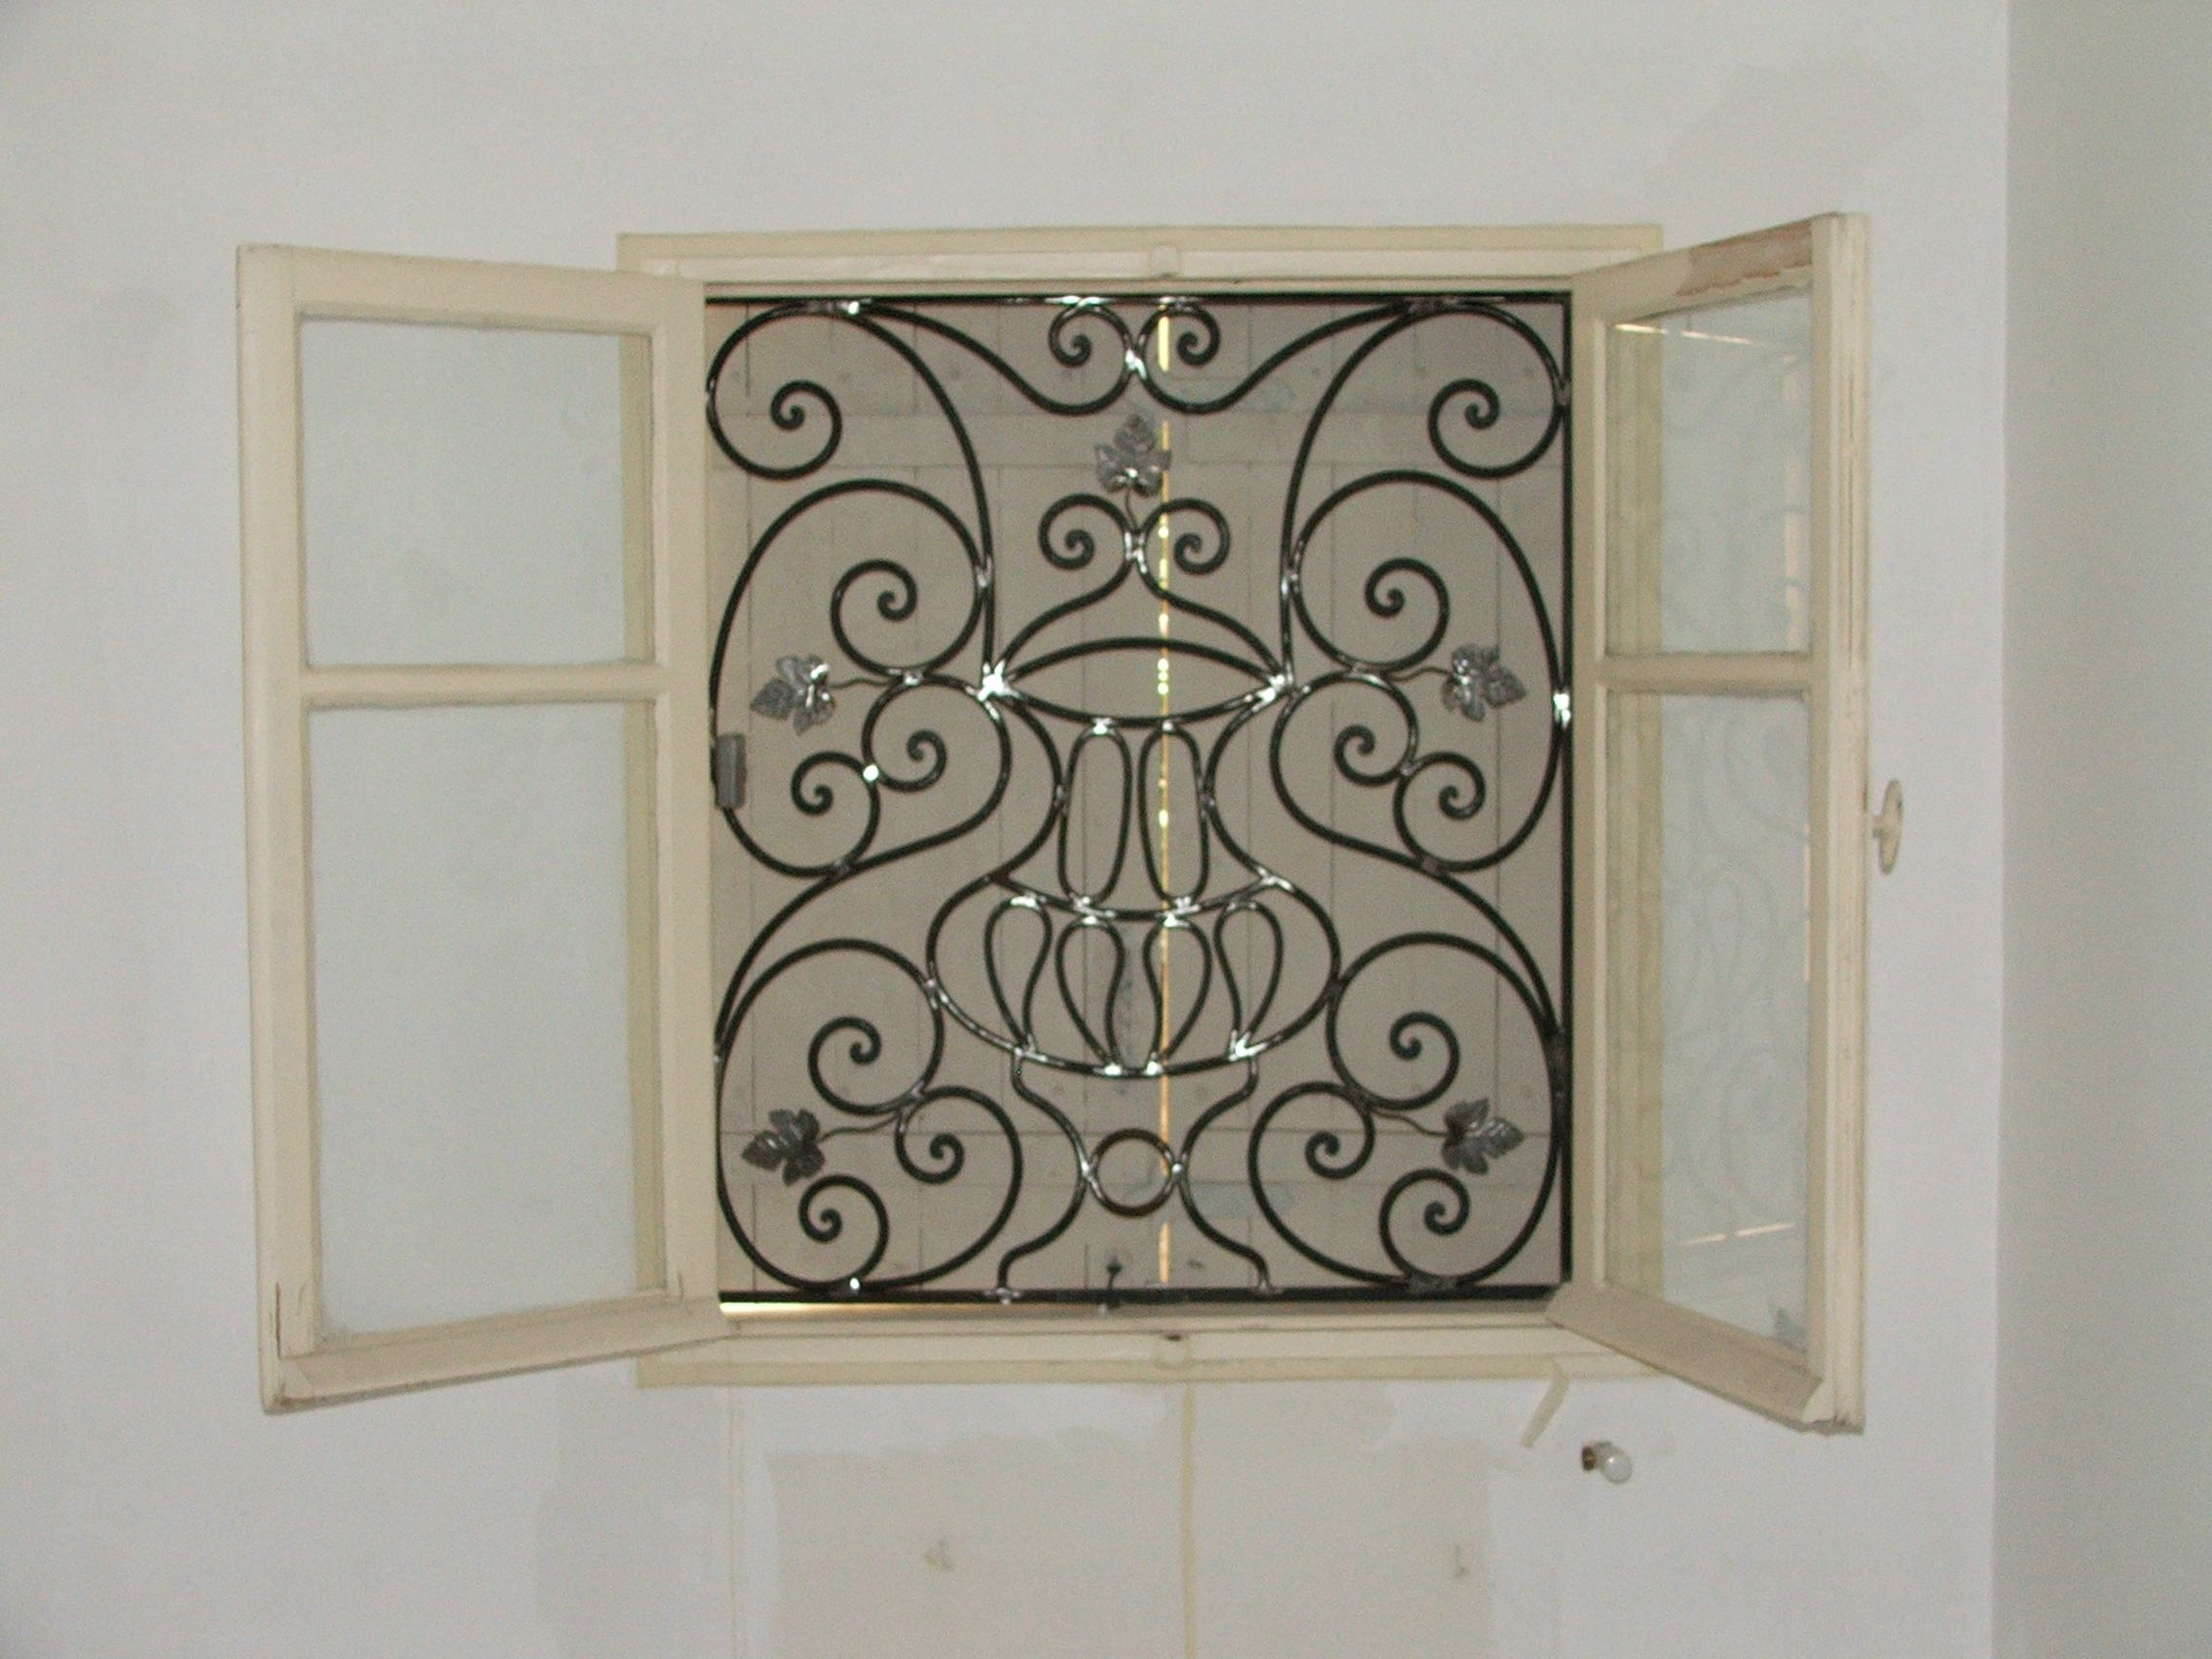 Grille fer forg lavandou fer forg pinterest window grill design et doors for Design fer forge fenetre